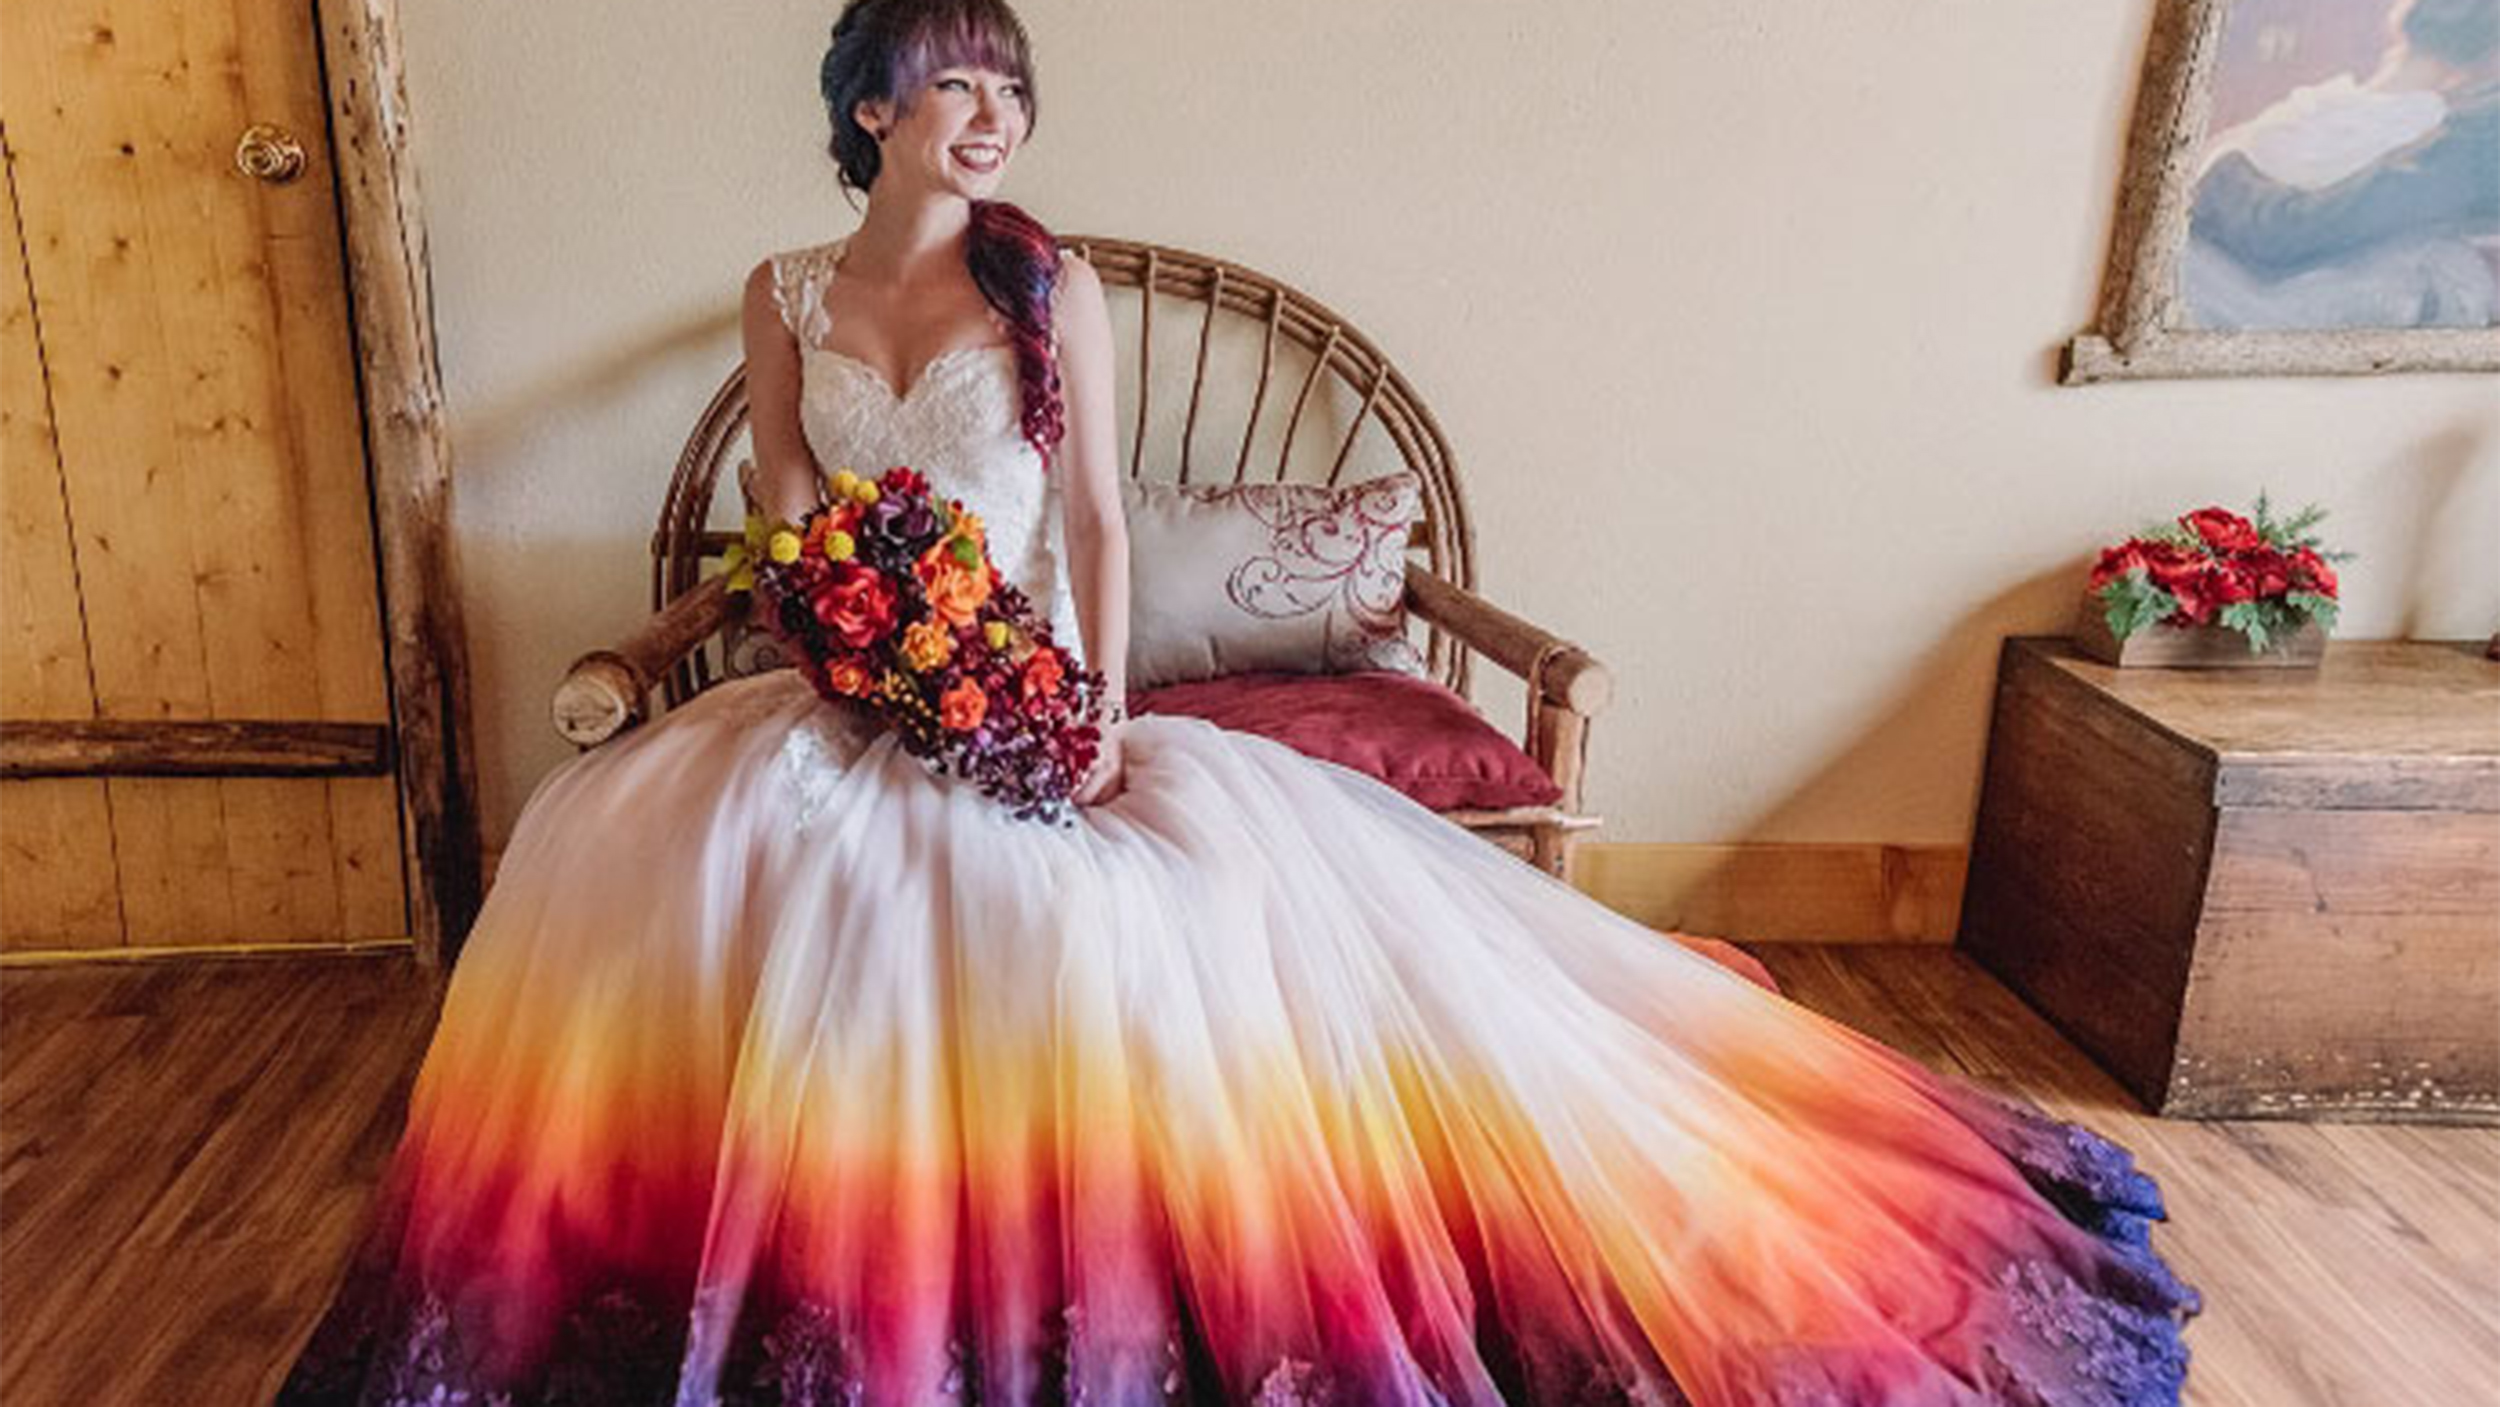 dip dyed colorful wedding dresses are new bridal trend t colorful wedding dress Dip dyed colorful wedding dresses are the new bridal trend TODAY com